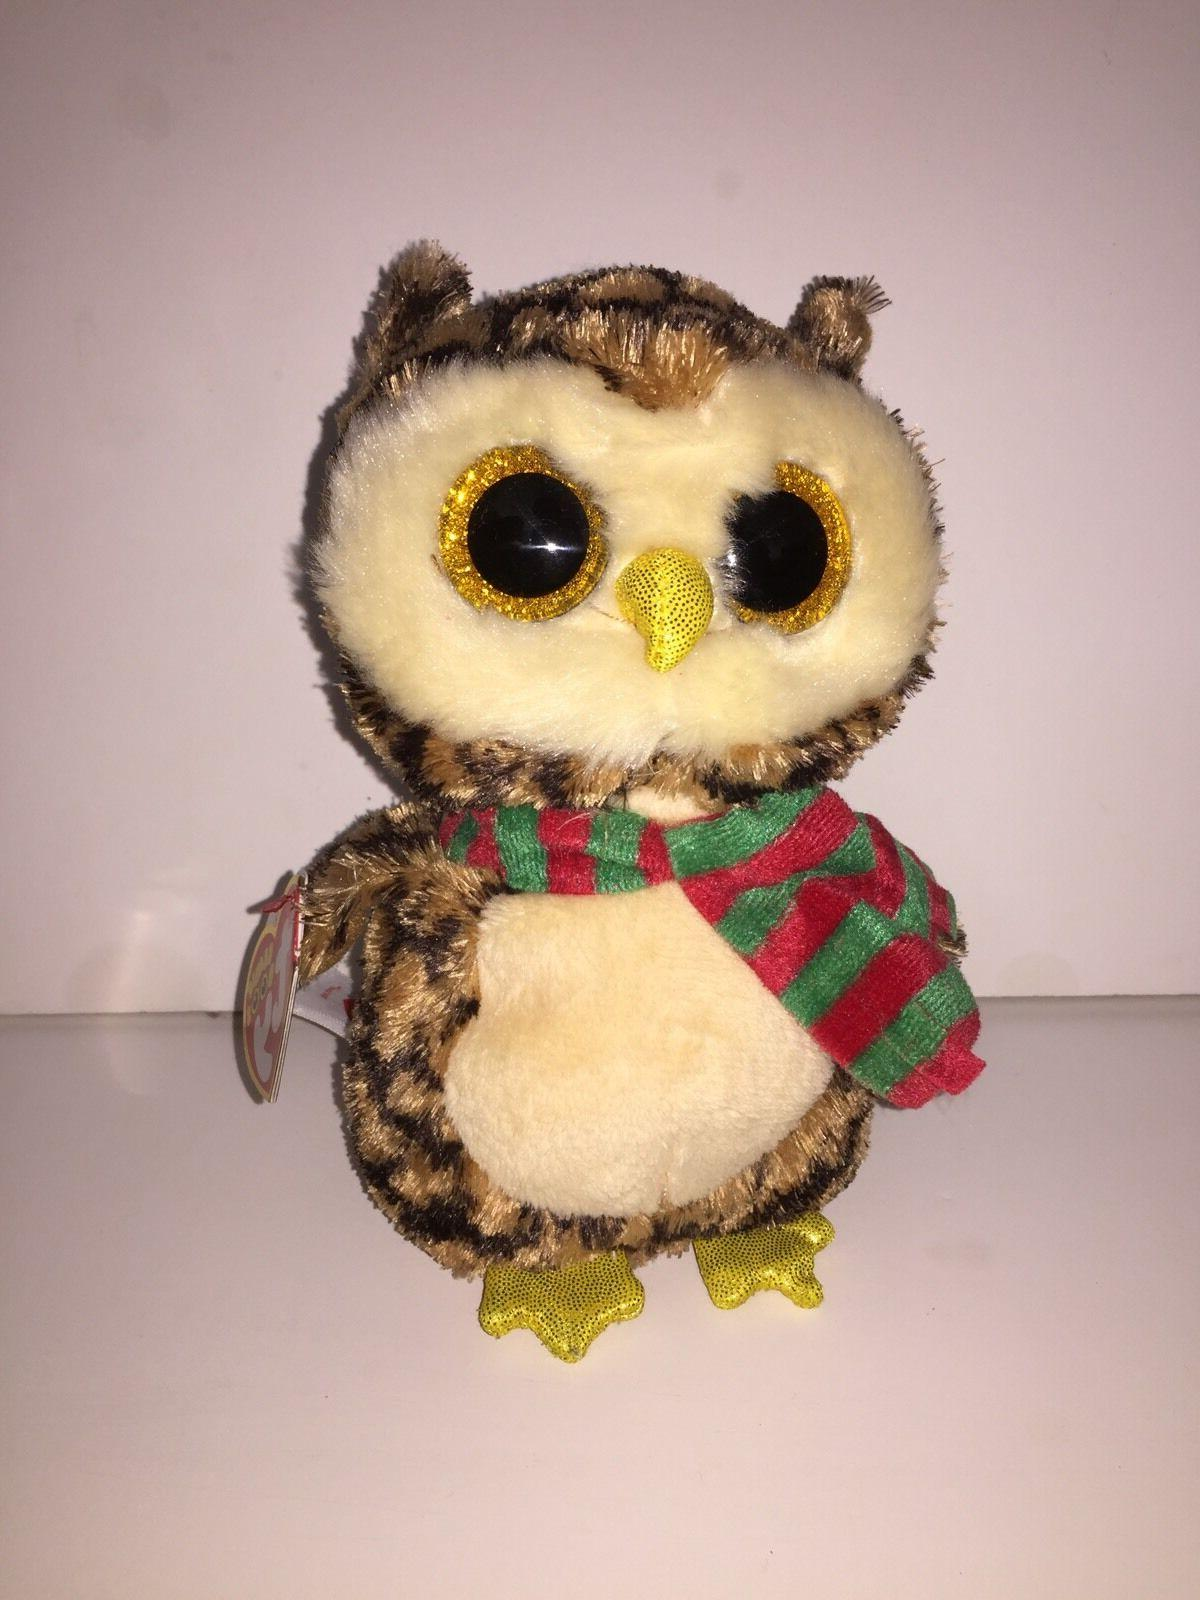 TY SAMMY OWL SET OF 2 BEANIE BOOS-NEW,MINT TAG*IN HAND*SHIPS